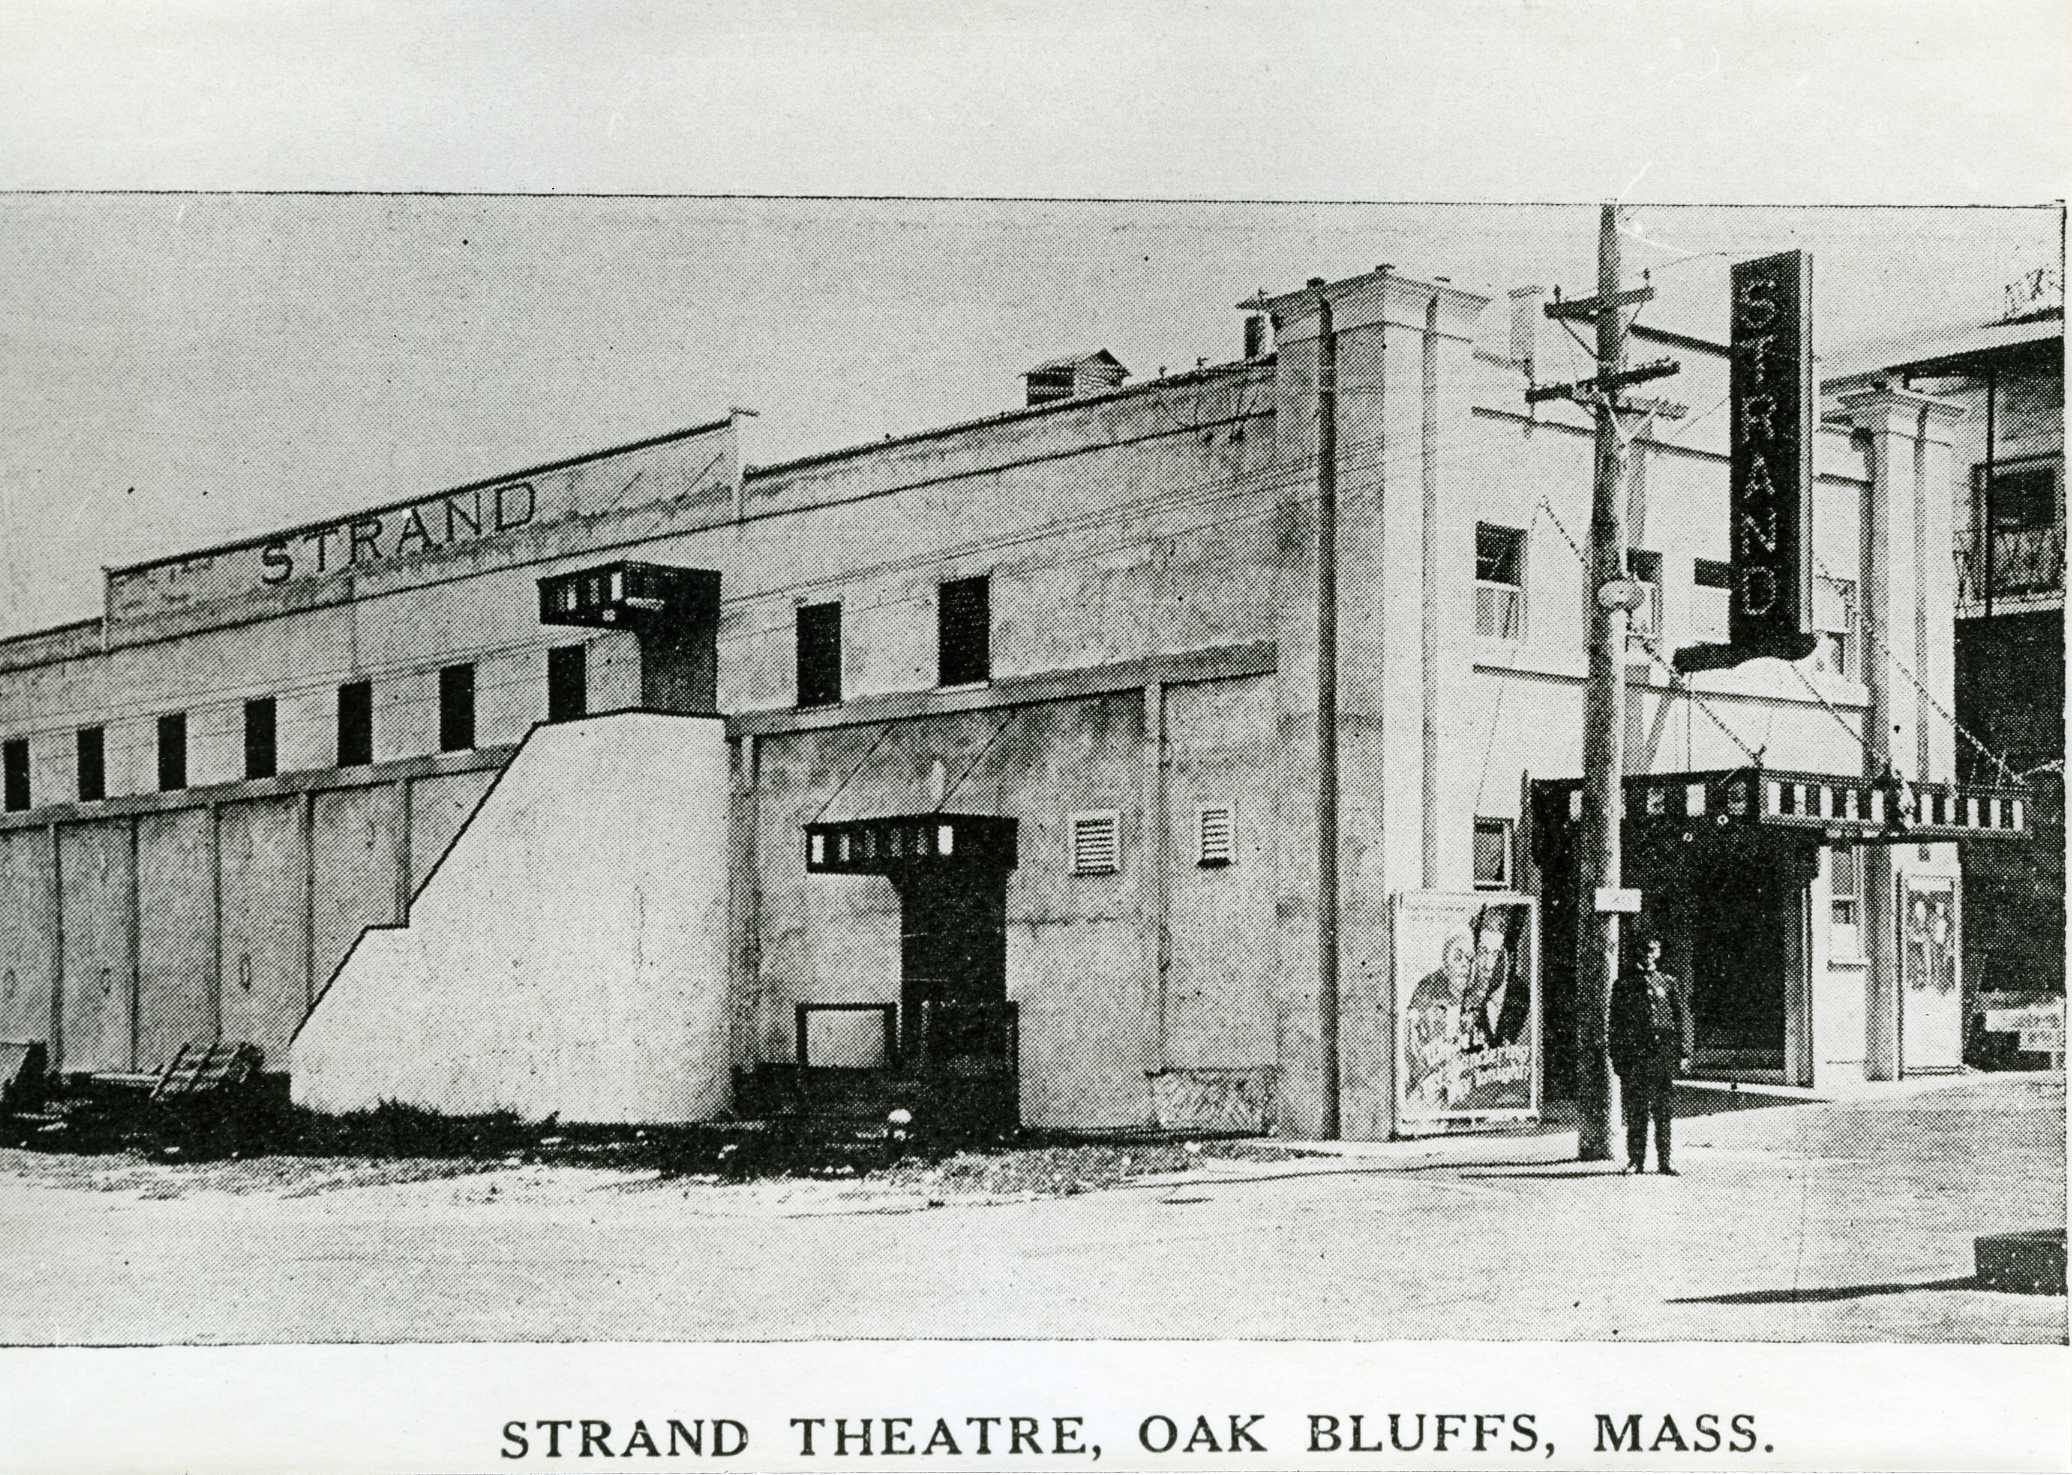 Historic Photo of the Strand Theatre from 1922 -Photo courtesy of Martha's Vineyard Museum